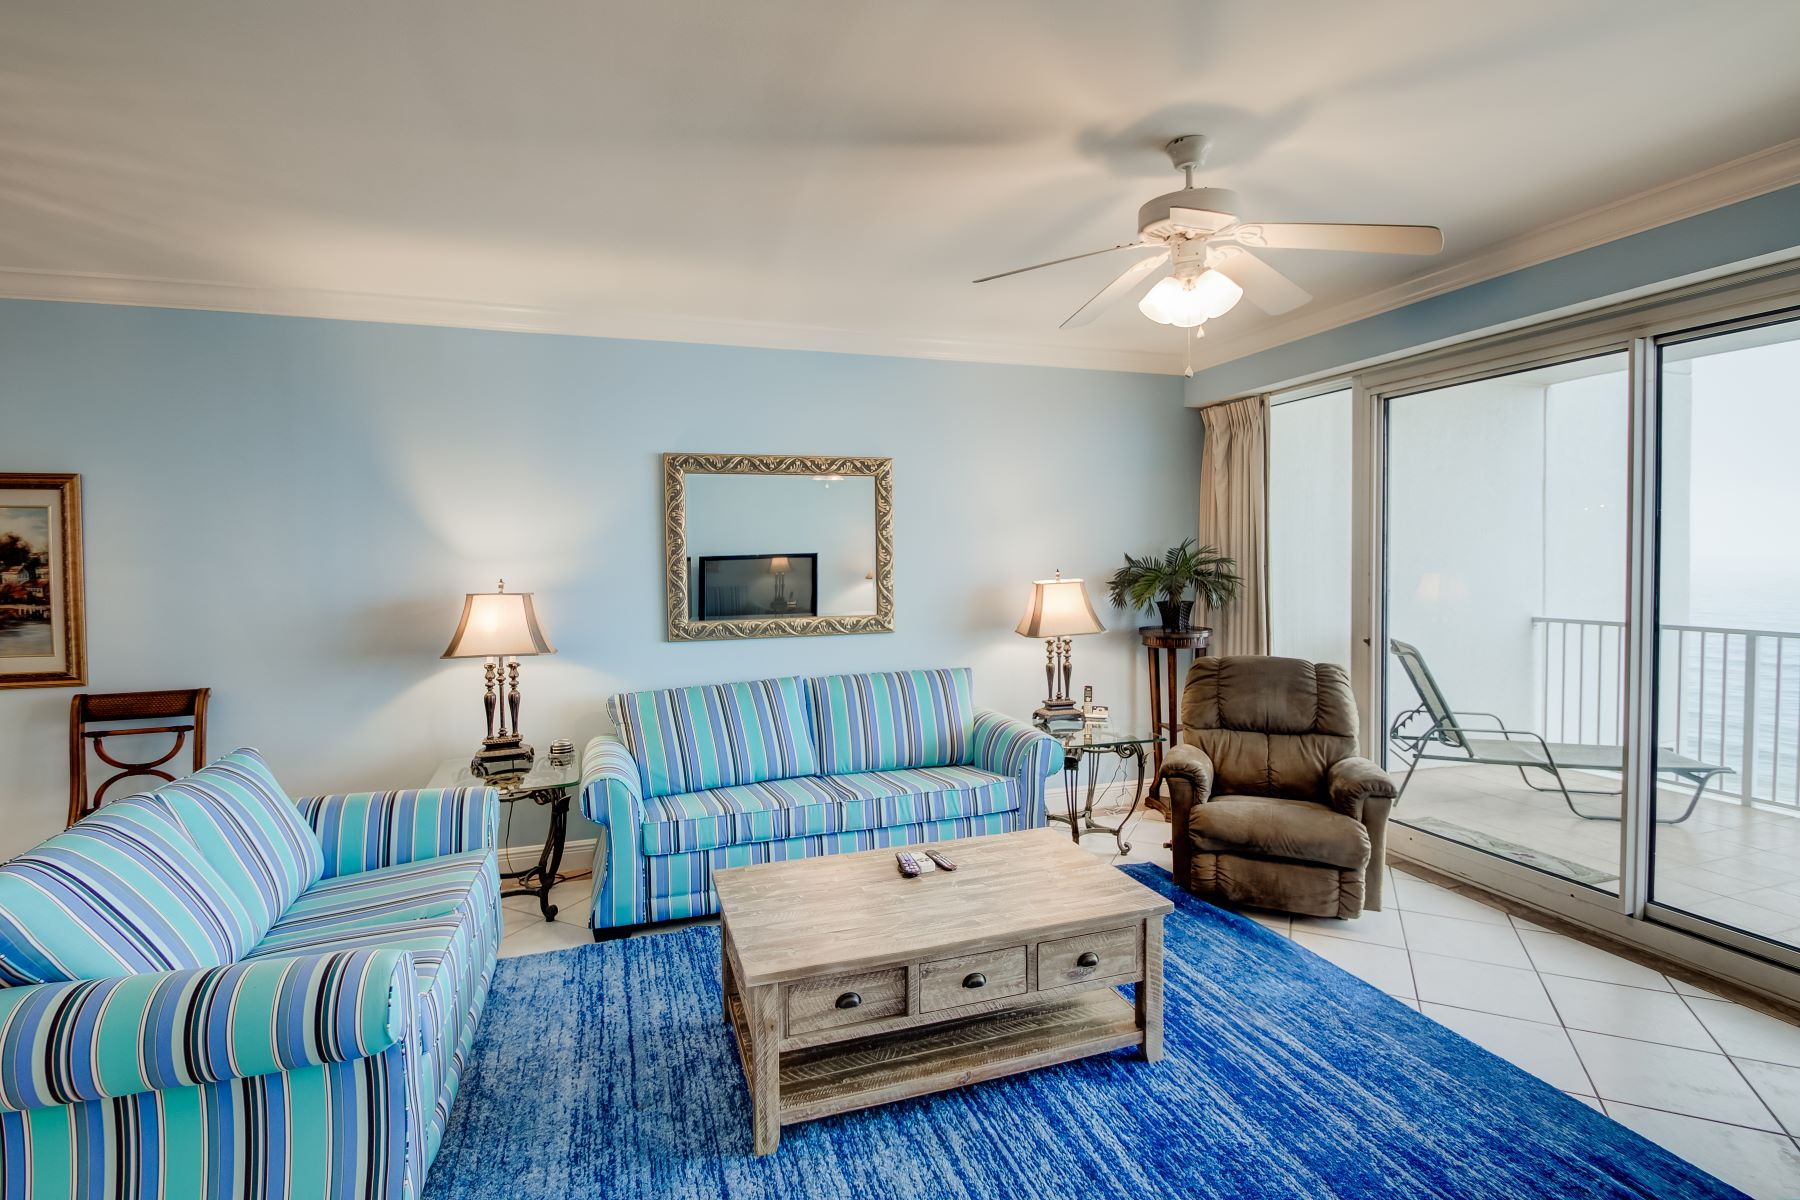 Condominiums for Sale at Corner Unit with Gulf Front Master Suite 6415 Thomas Drive 505, Panama City Beach, Florida 32408 United States